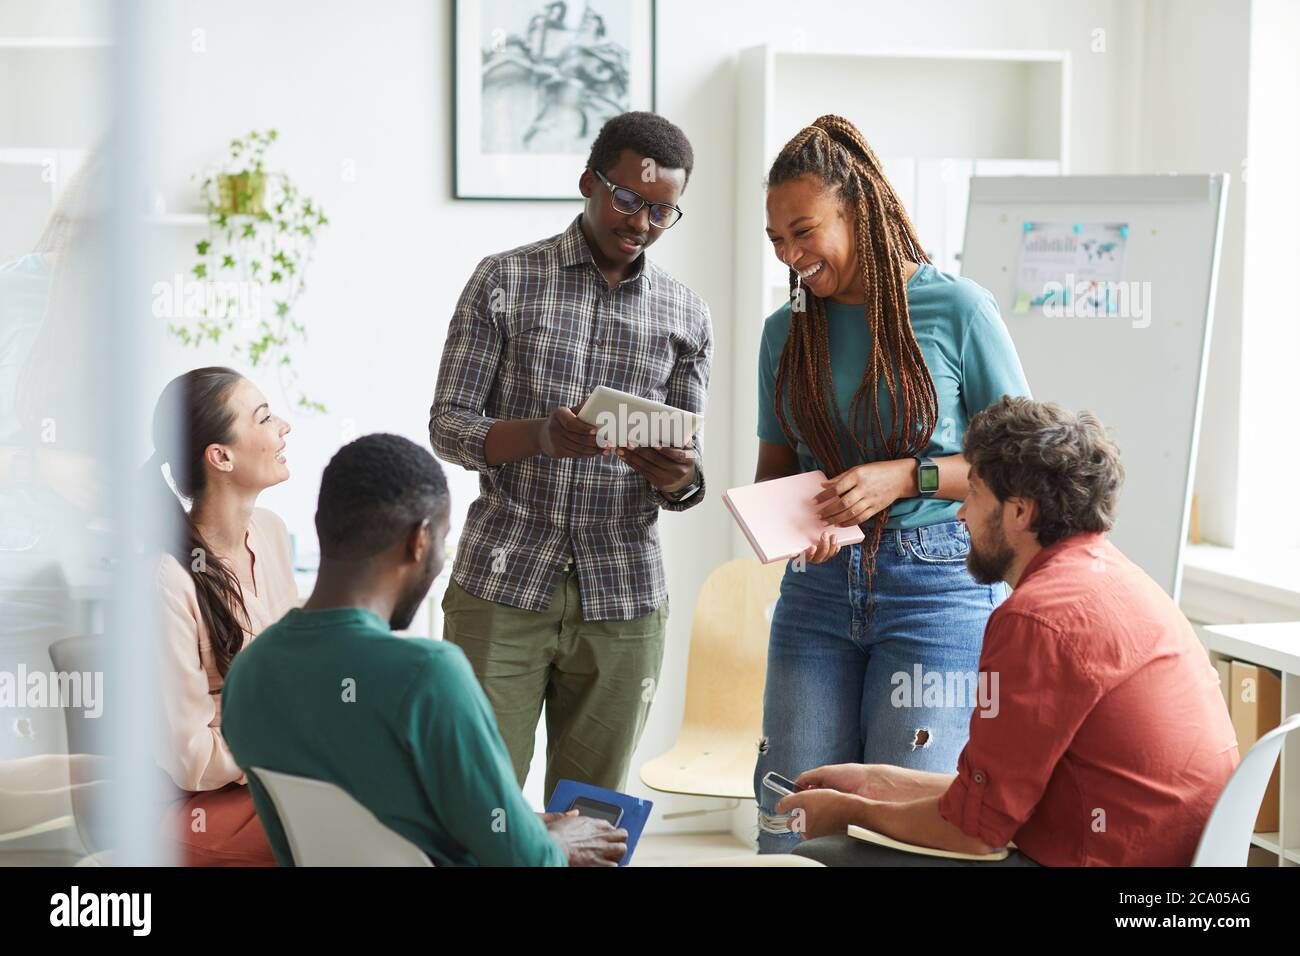 Multi-ethnic group of people sitting in circle while discussing business project in office, focus on smiling African-American woman talking to colleague standing up , copy space Stock Photo